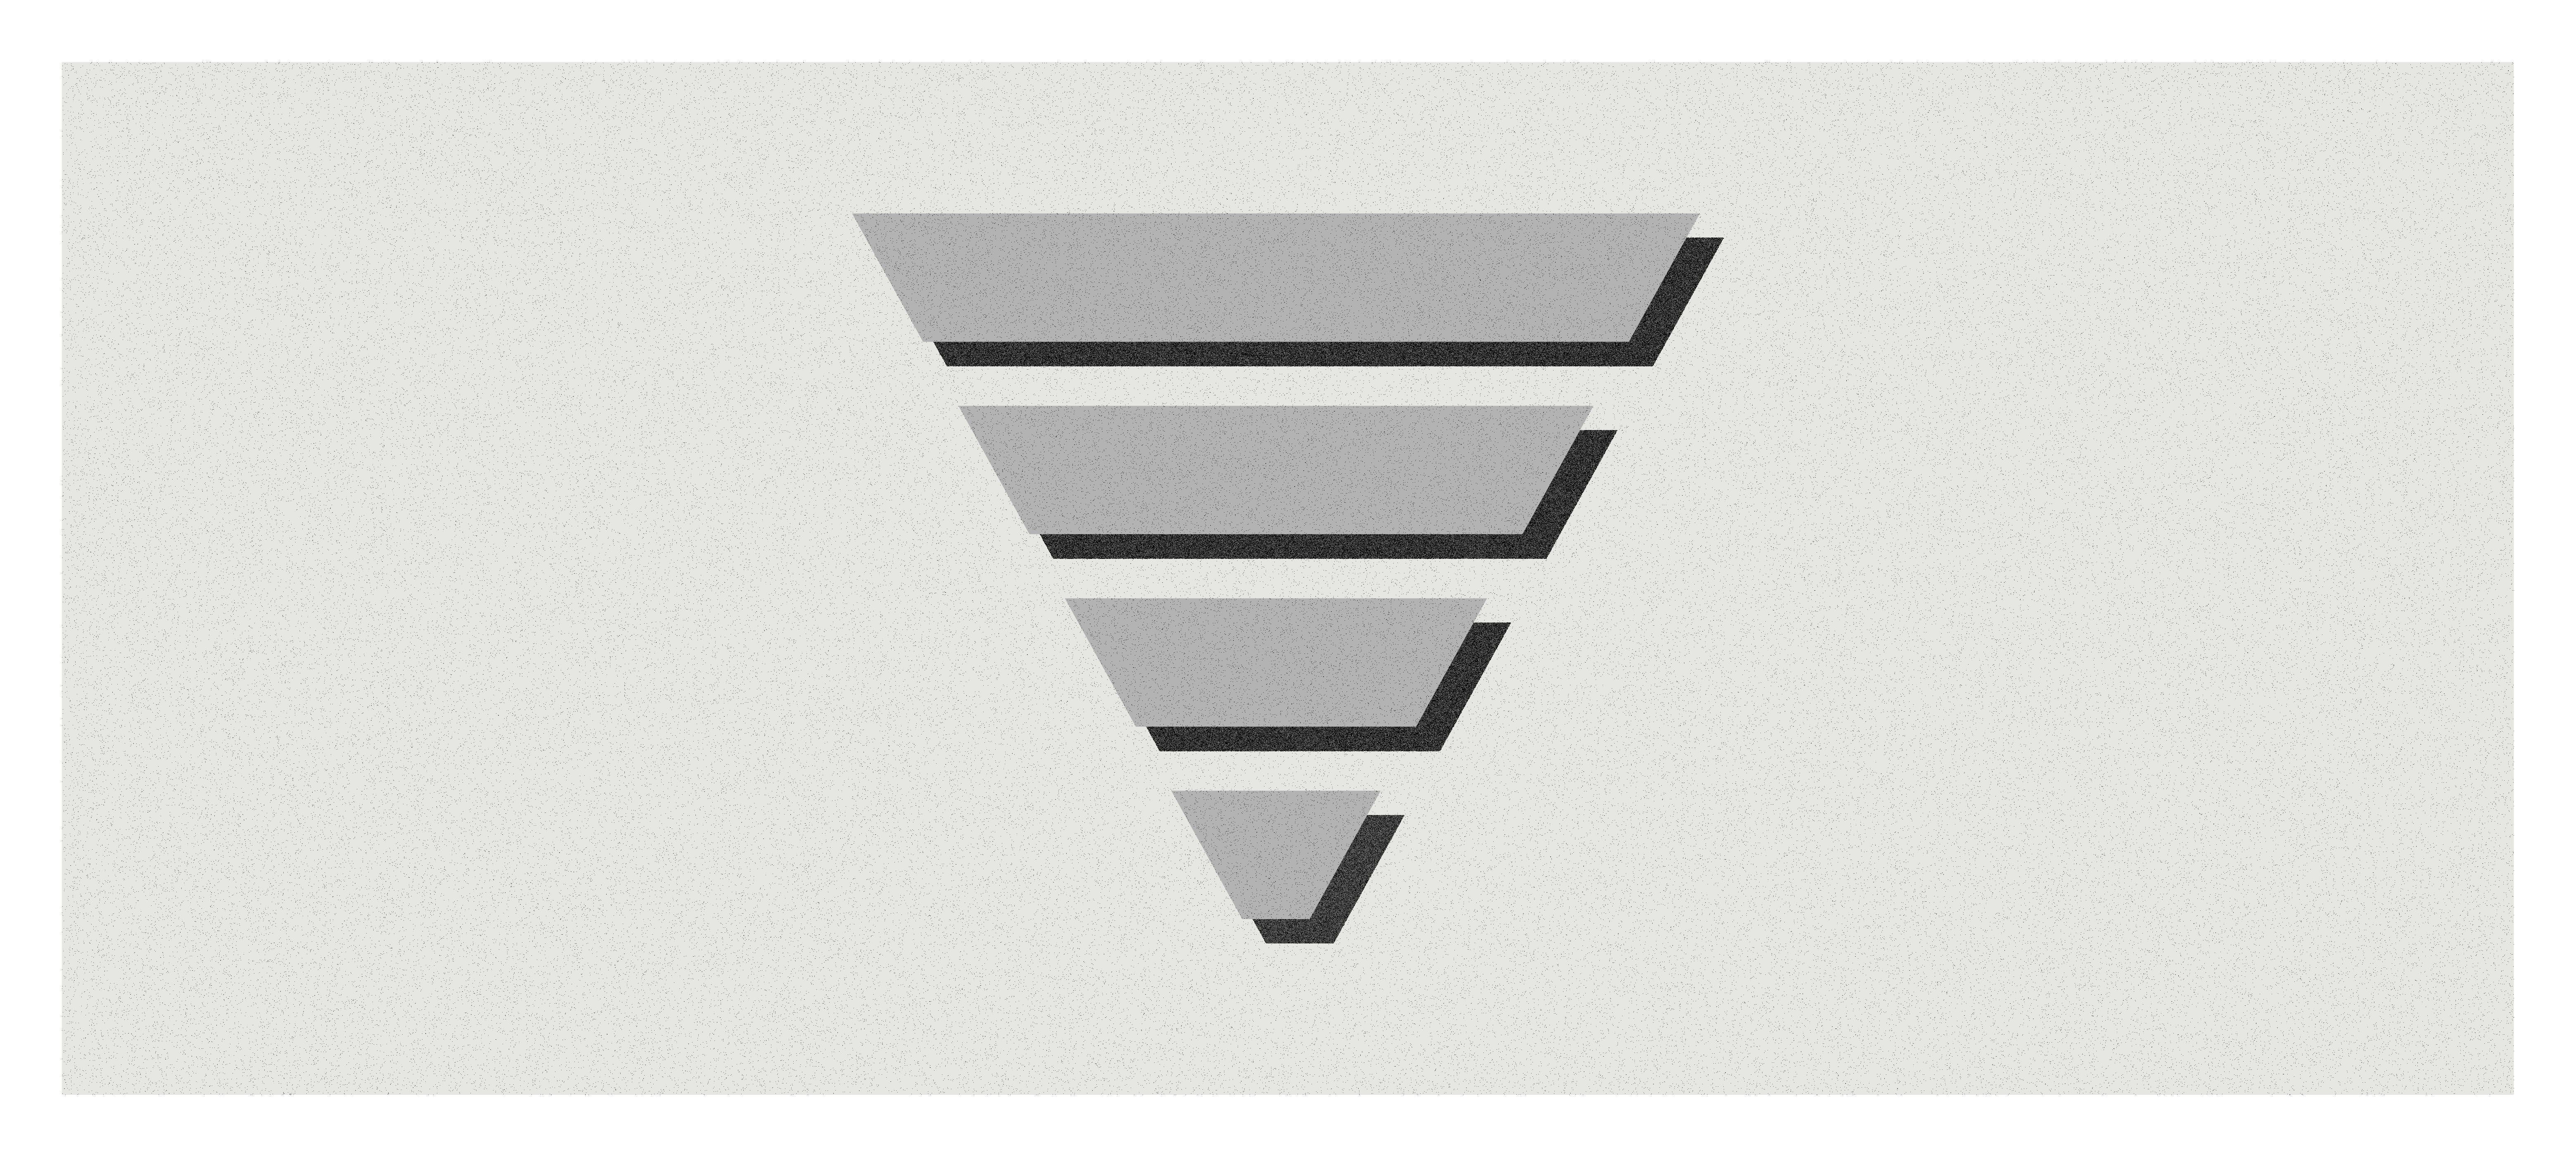 An illustration of a gray and black marketing funnel against a gray background.